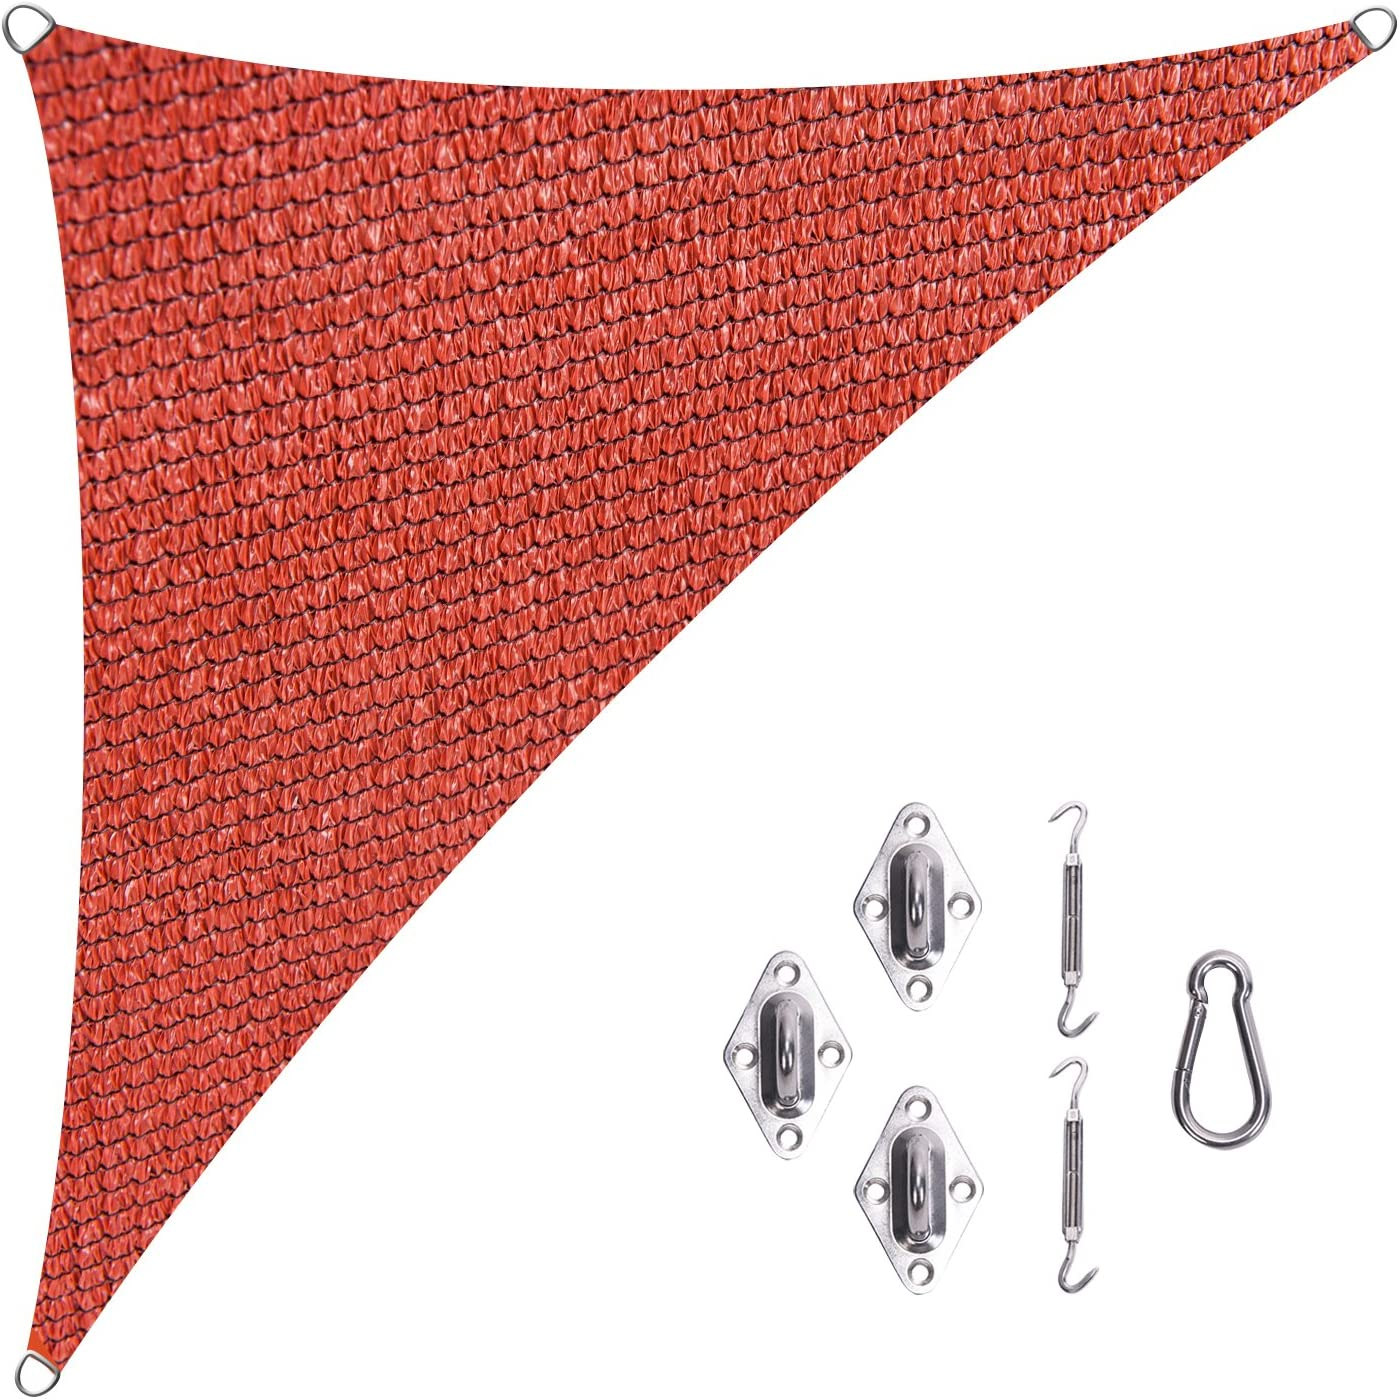 Cool Area Right Triangle 16 5 x 16 5 x 22 11 Sun Shade Sail with Stainless Steel Hardware Kit for Patio in Color Terra